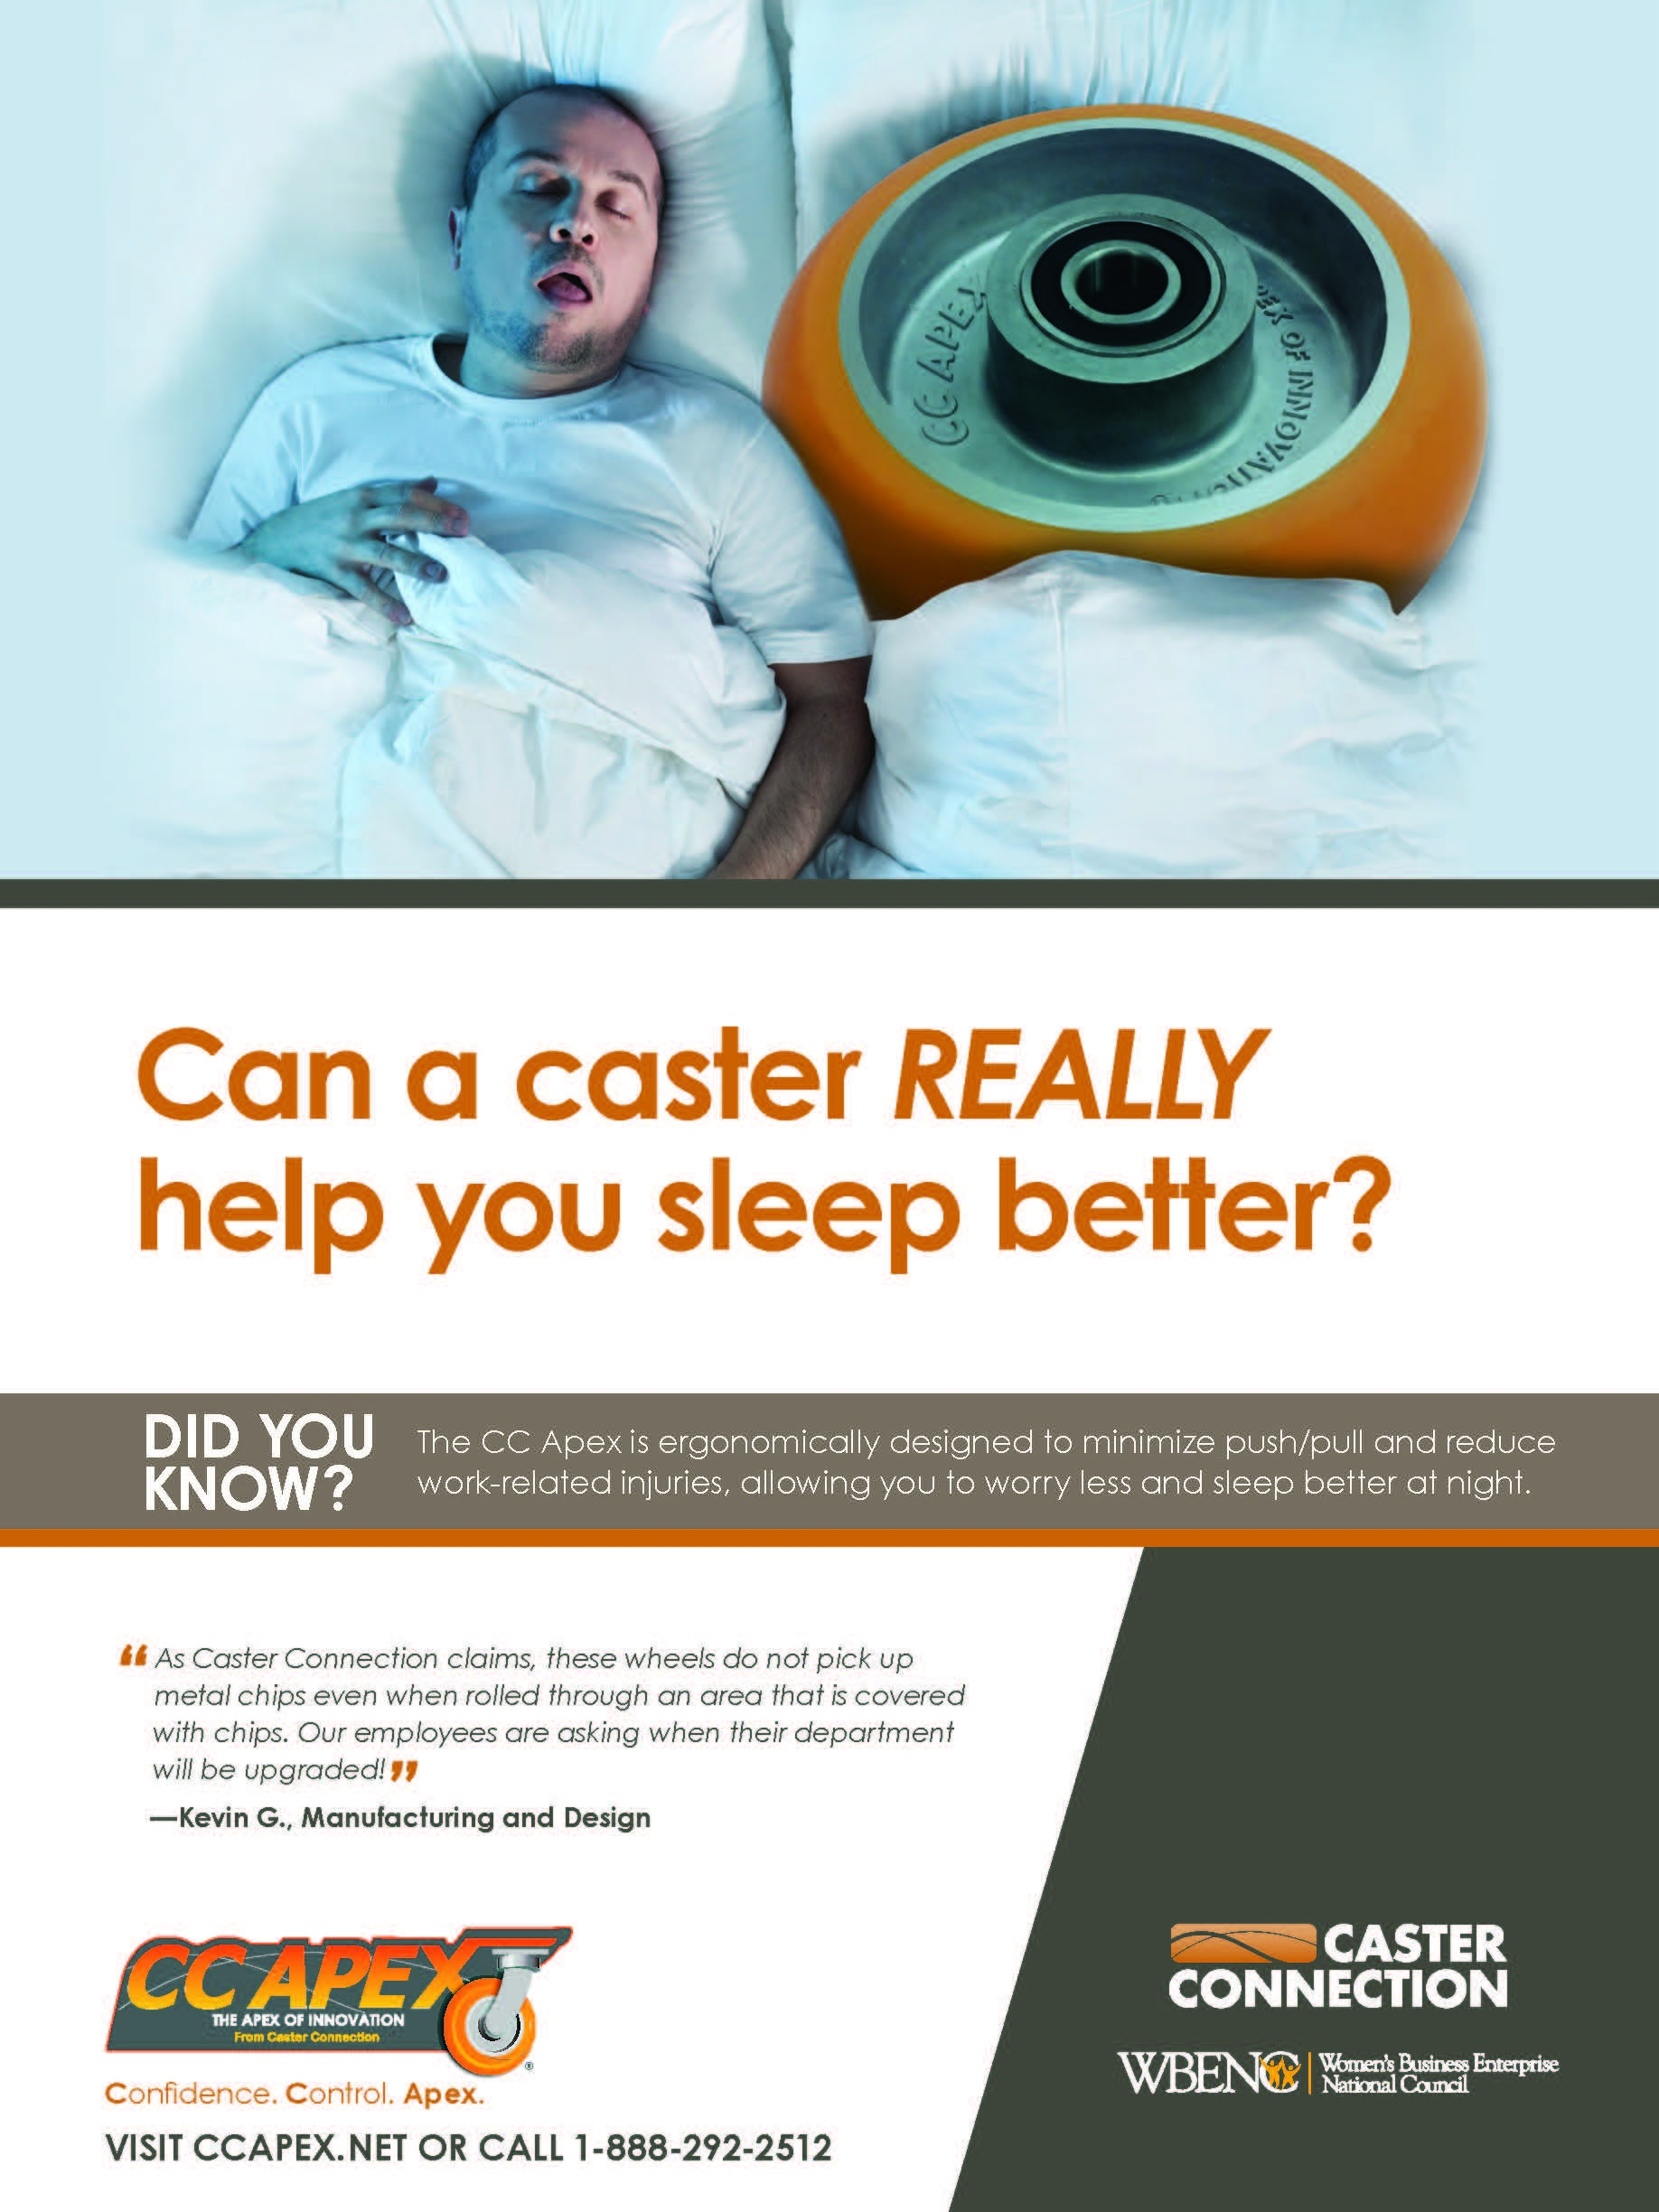 Can a caster really help you sleep better?